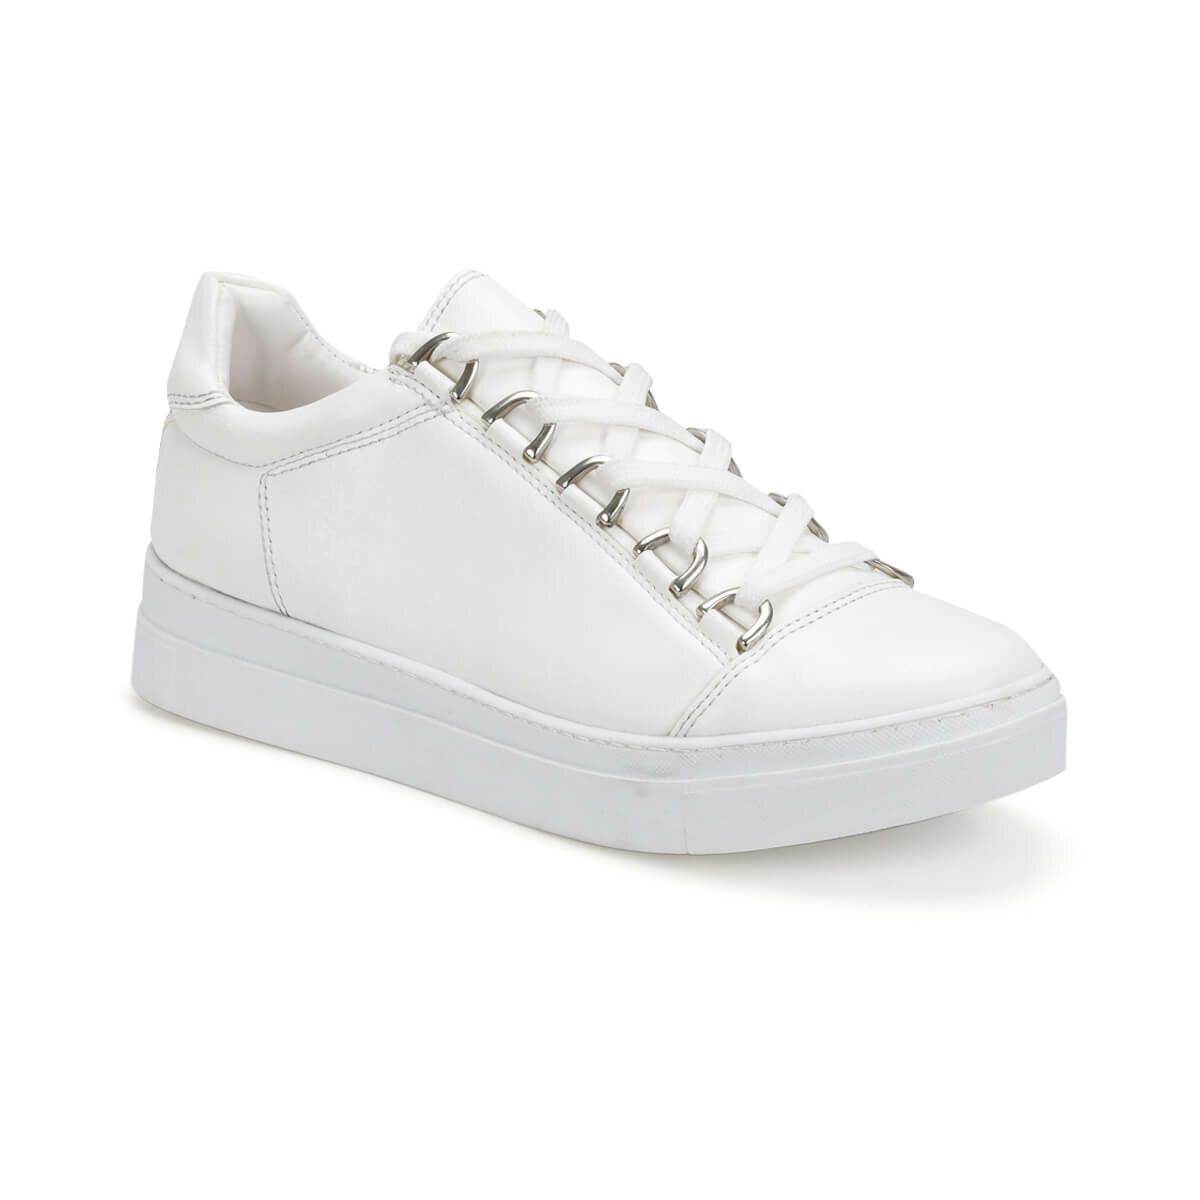 FLO CS18087-19S White Women 'S Sneaker Shoes Art Bella